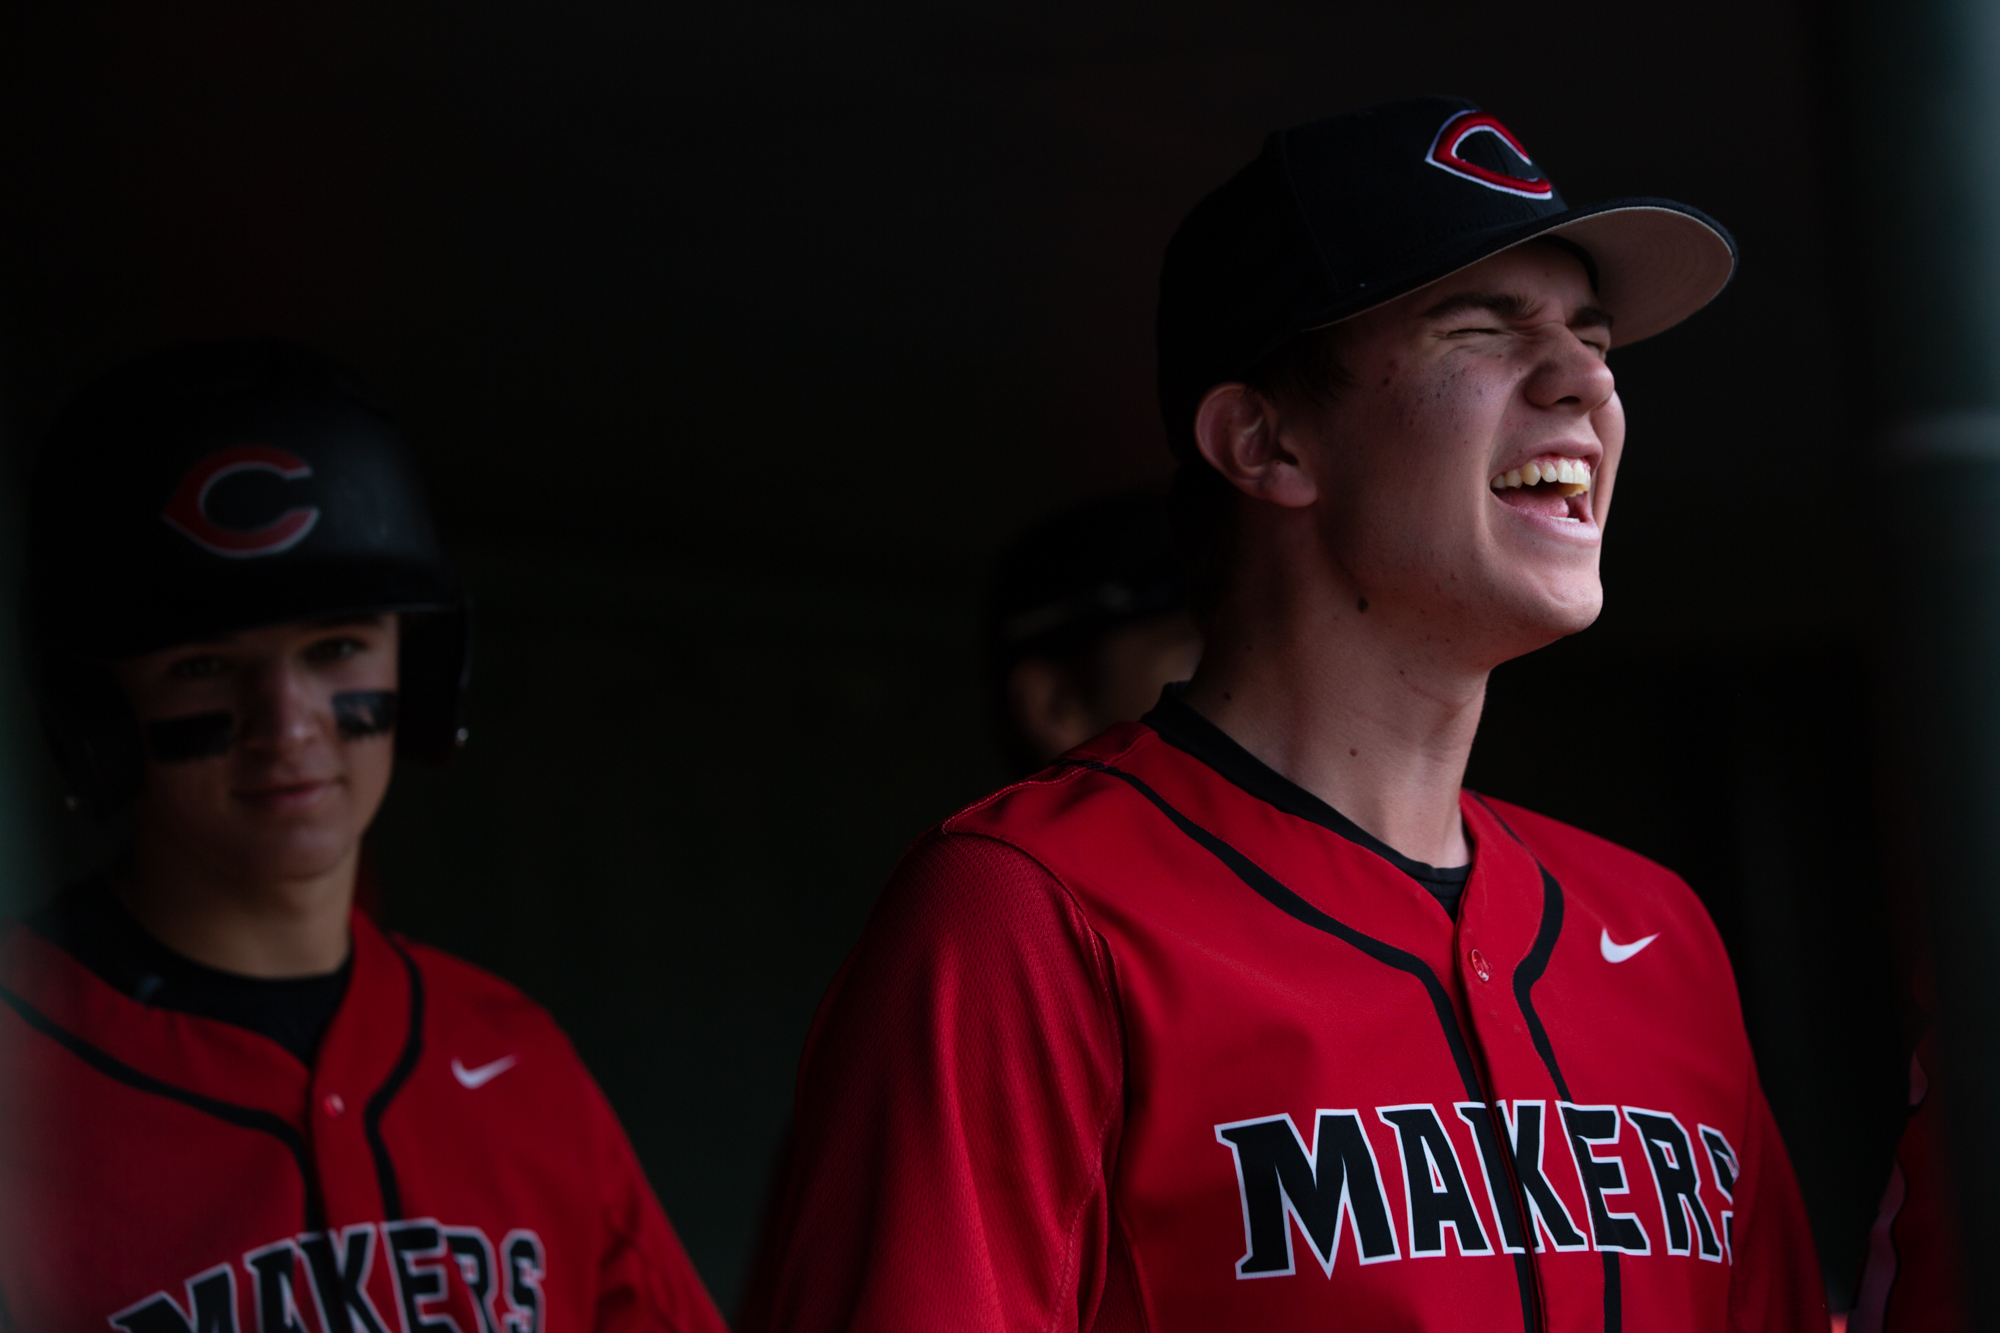 Luke Brewer of the Camas Papermakers cheers on his teammates from the dugout during a game against the Issaquah Eagles at Propstra Stadium on Saturday afternoon, May 18, 2019.